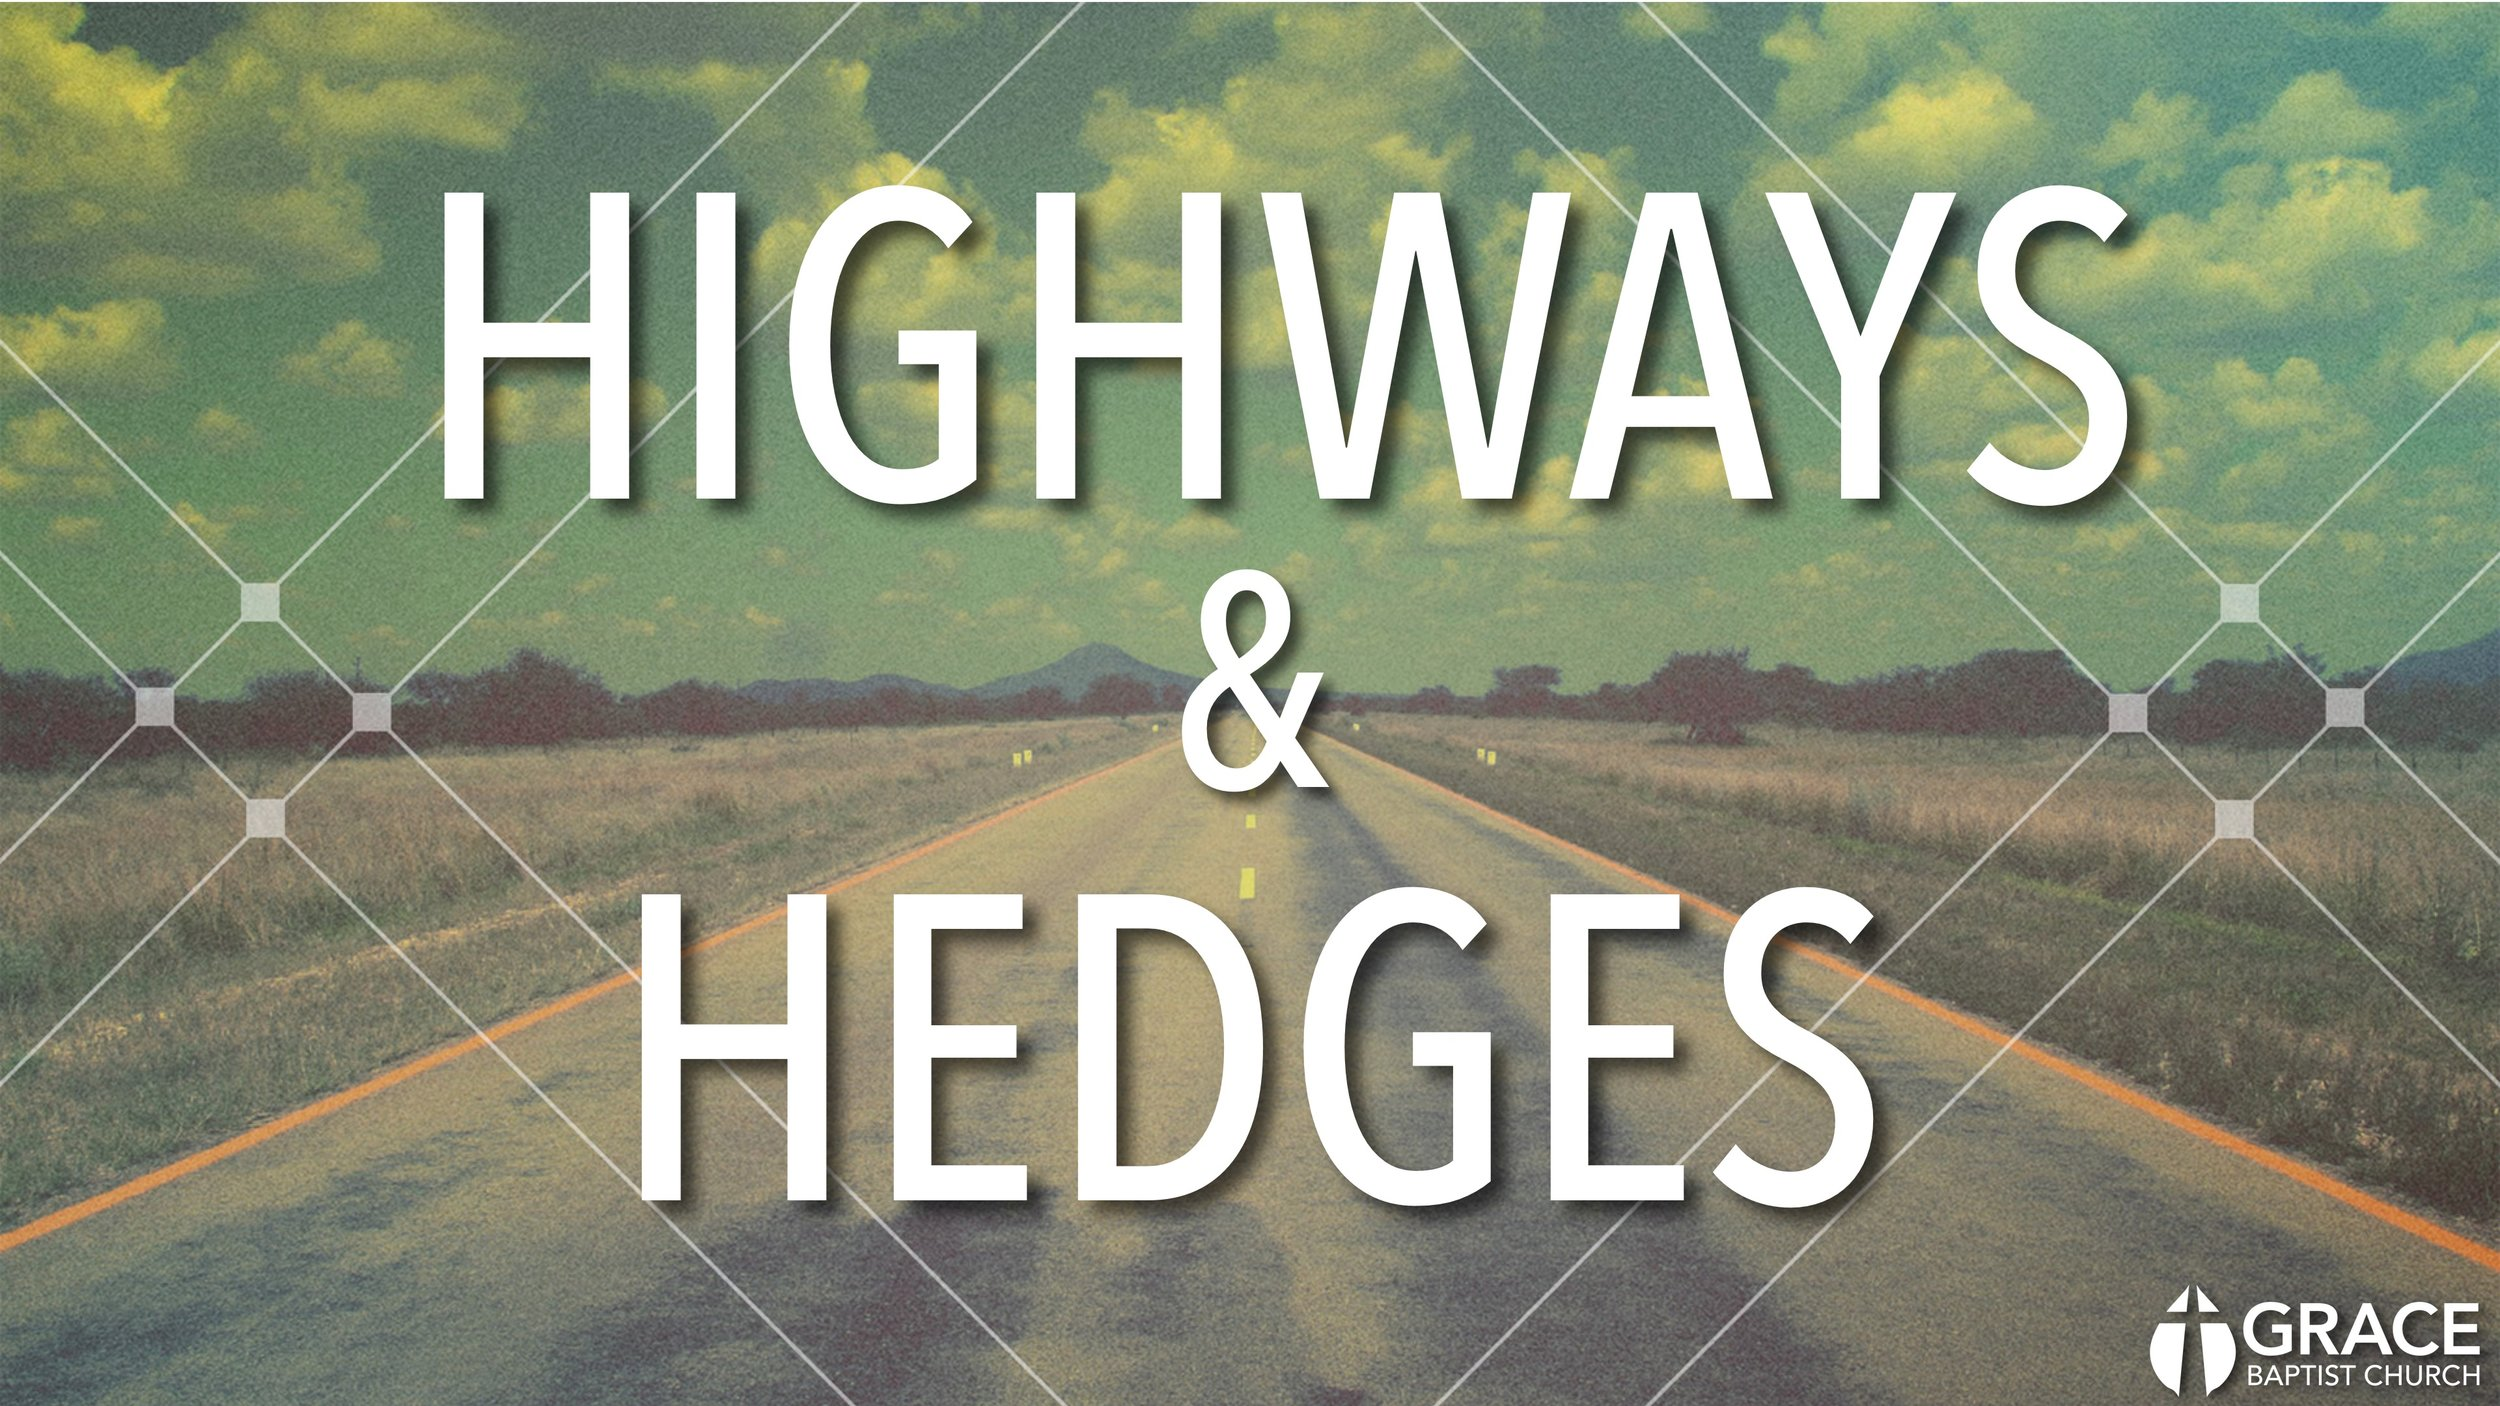 Highways & Hedges_BLANK.jpg